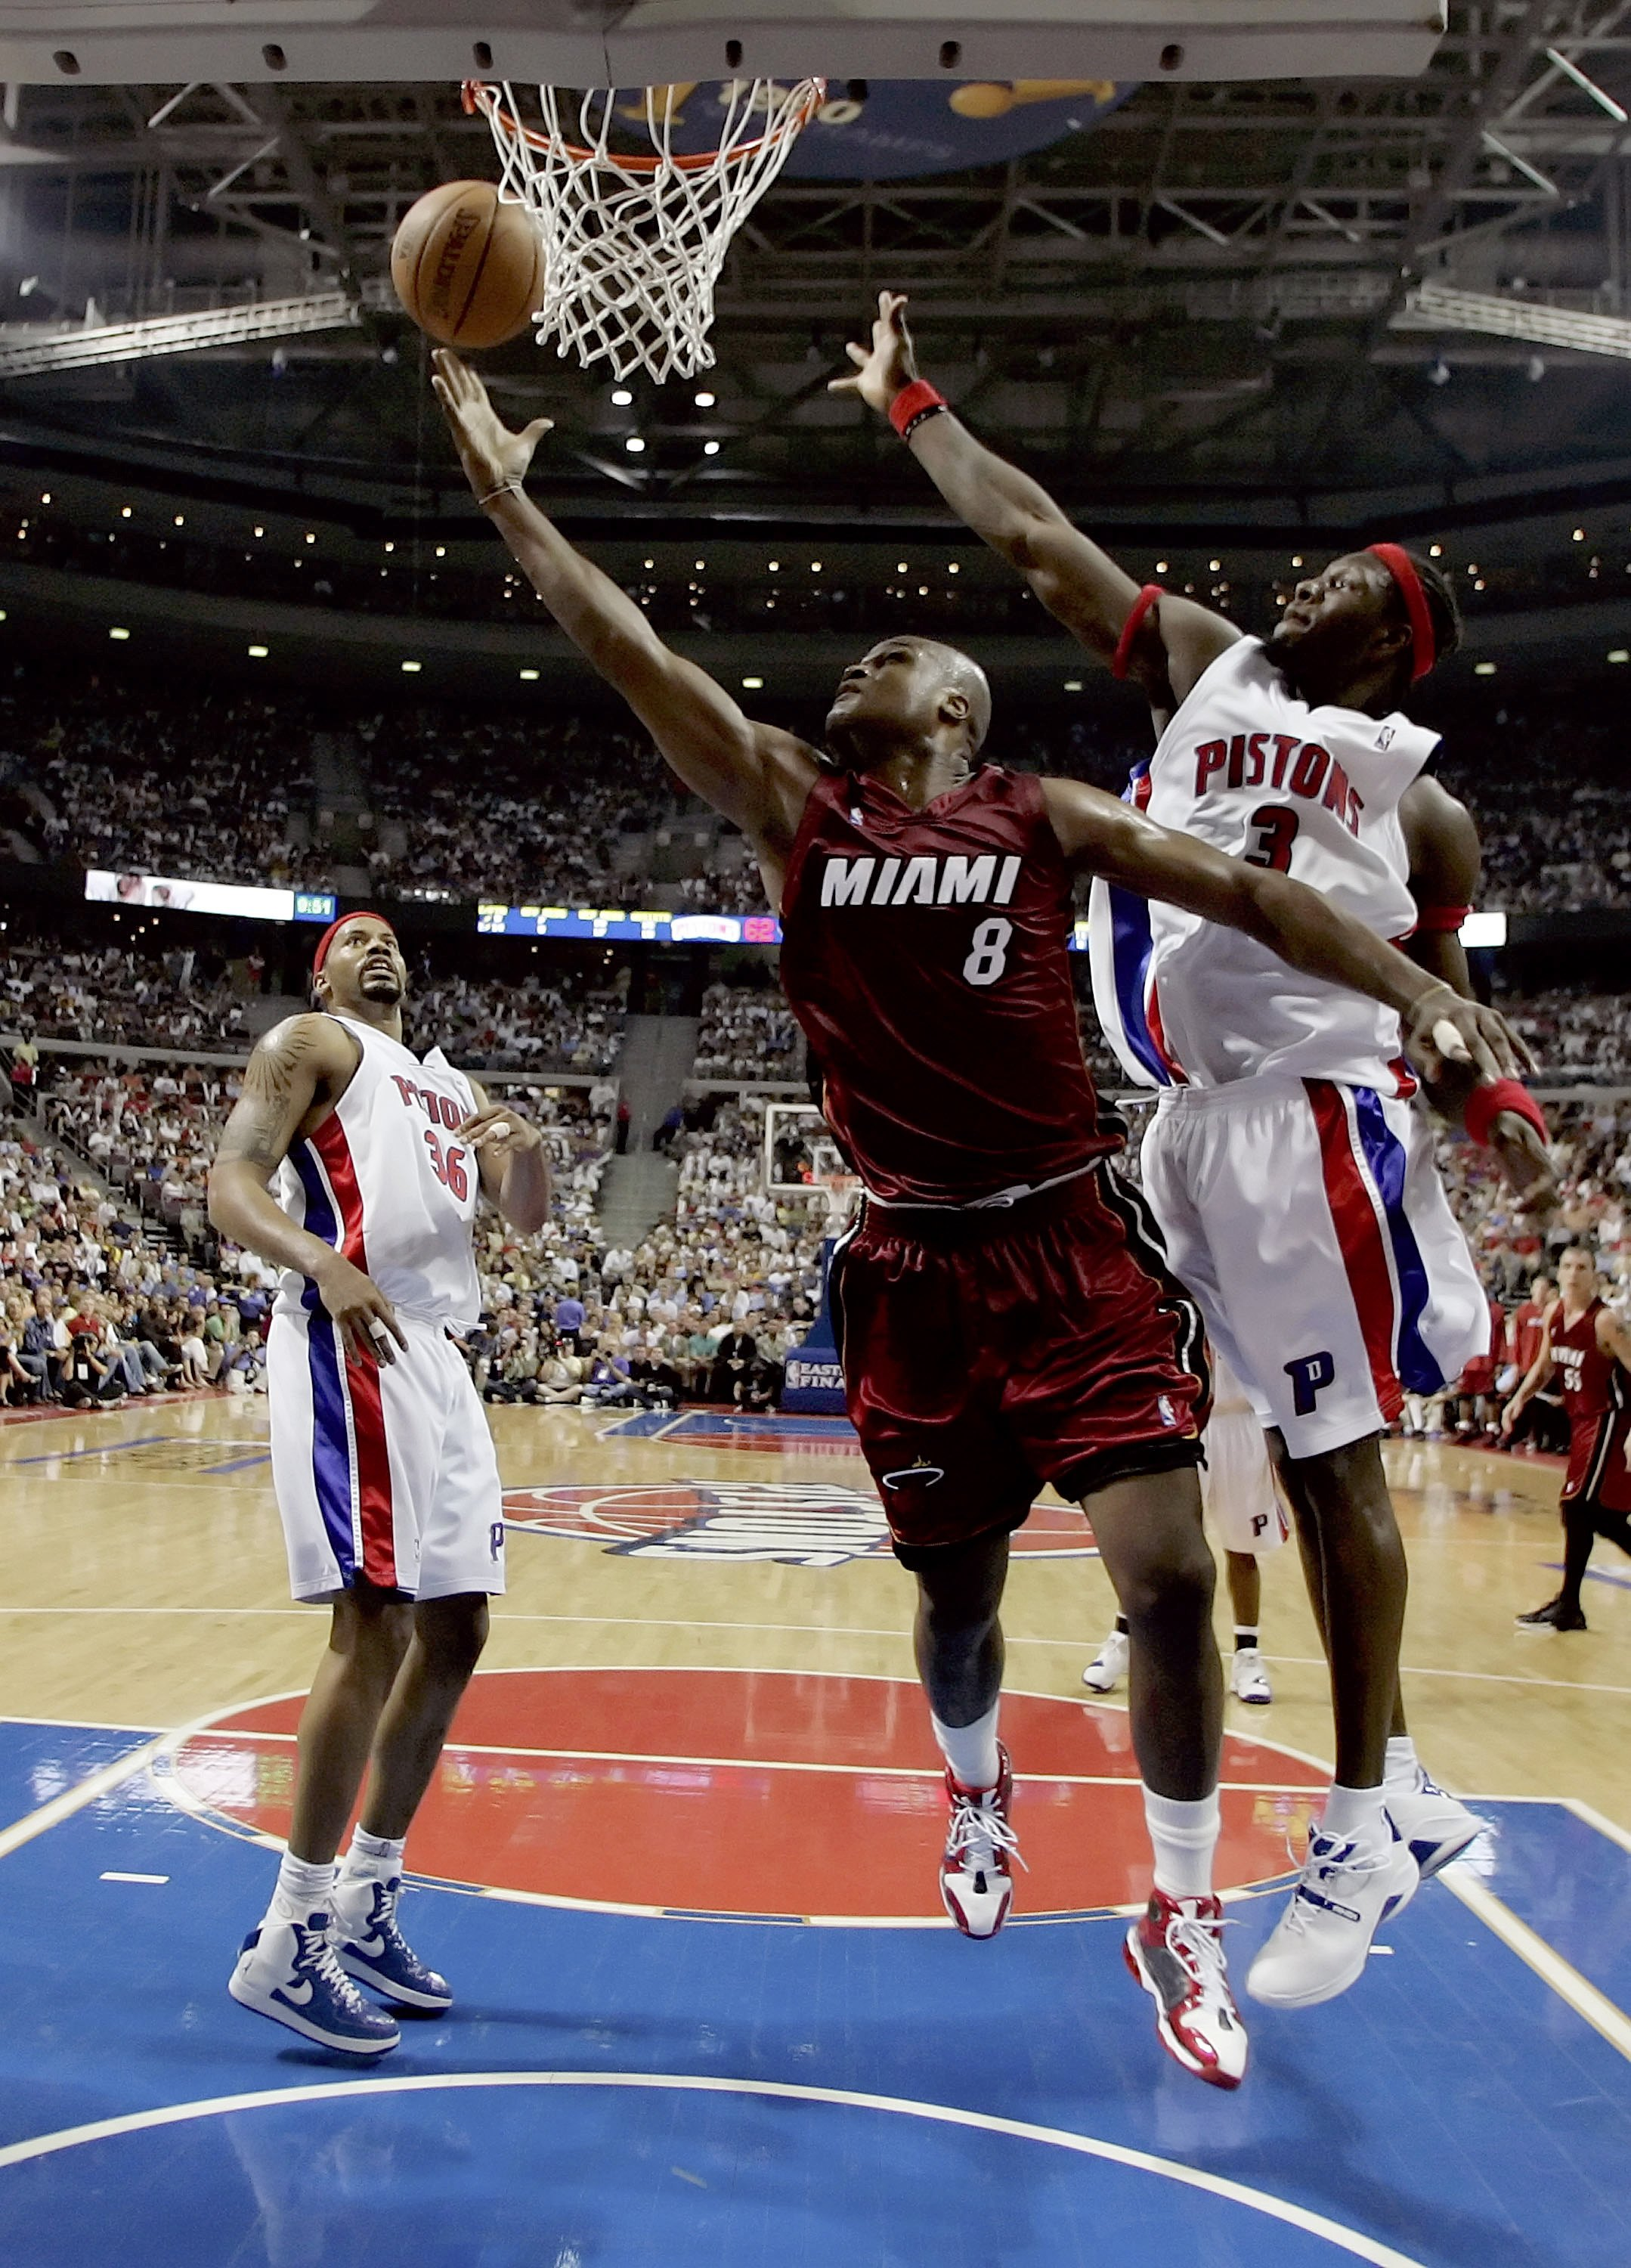 AUBURN HILLS, MI - MAY 31:  Antoine Walker #8 of the Miami Heat shoots a layup against Ben Wallace #3 of the Detroit Pistons in game five of the Eastern Conference Finals during the 2006 NBA Playoffs on May 31, 2006 at the Palace of Auburn Hills in Auburn